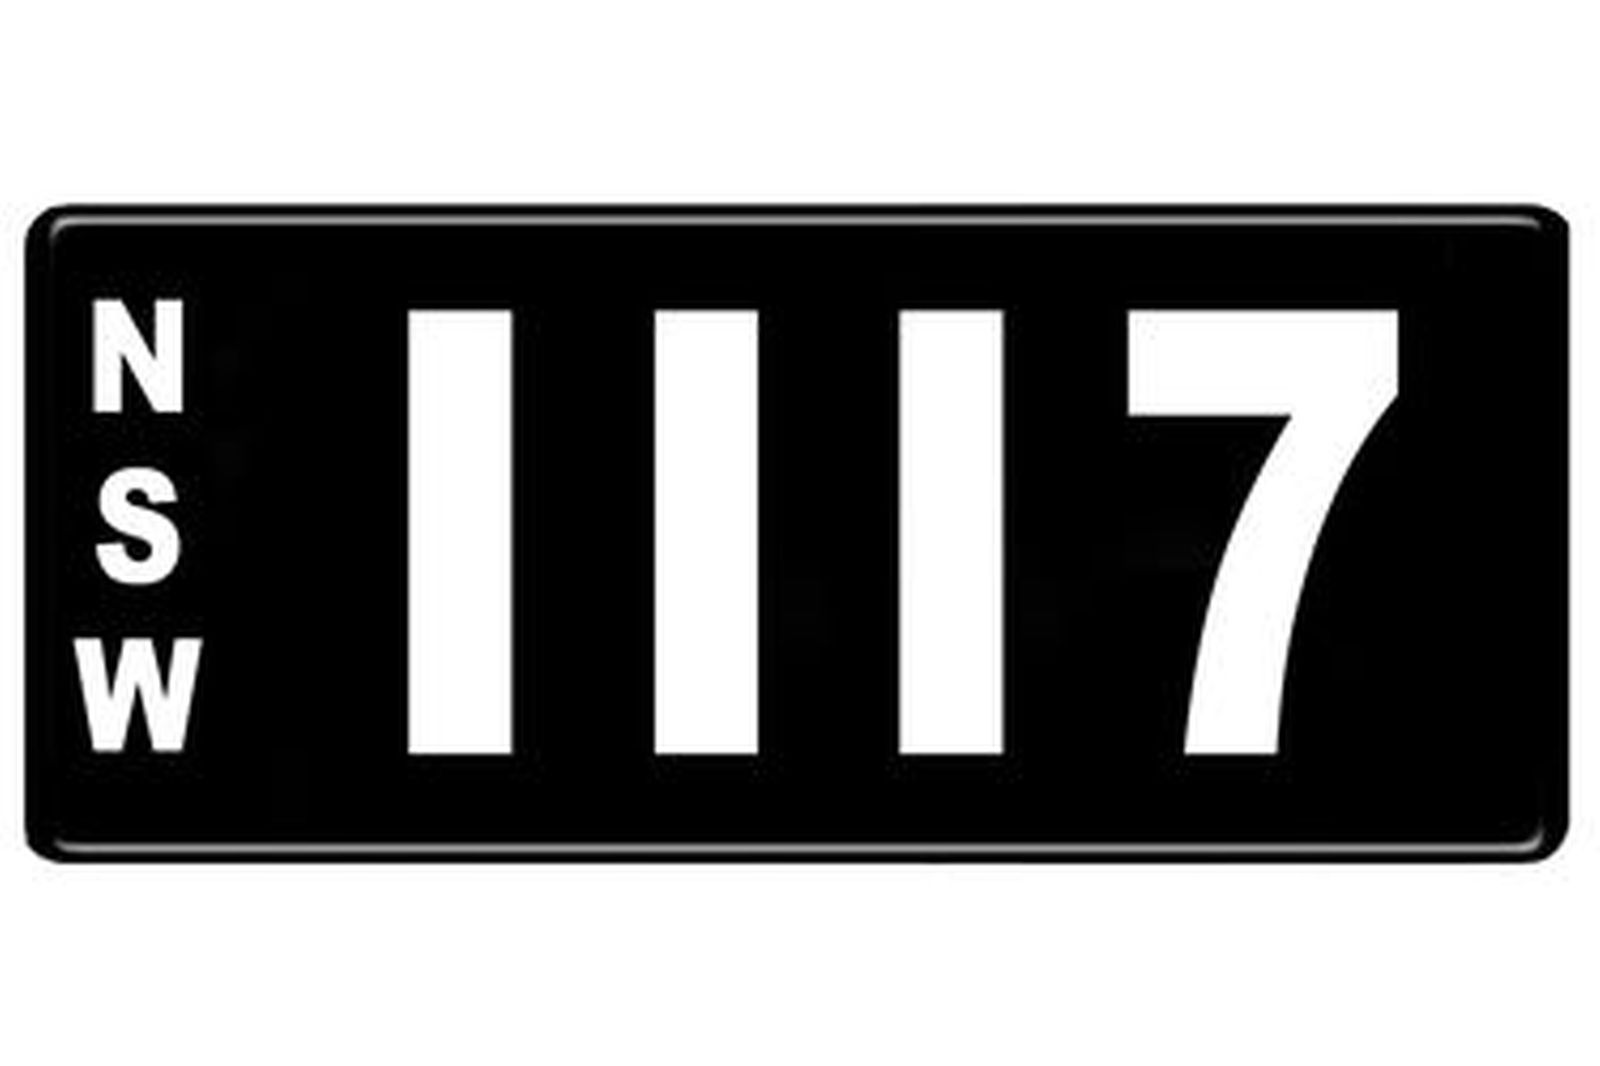 Number Plates - NSW Numerical Number Plates '1117'